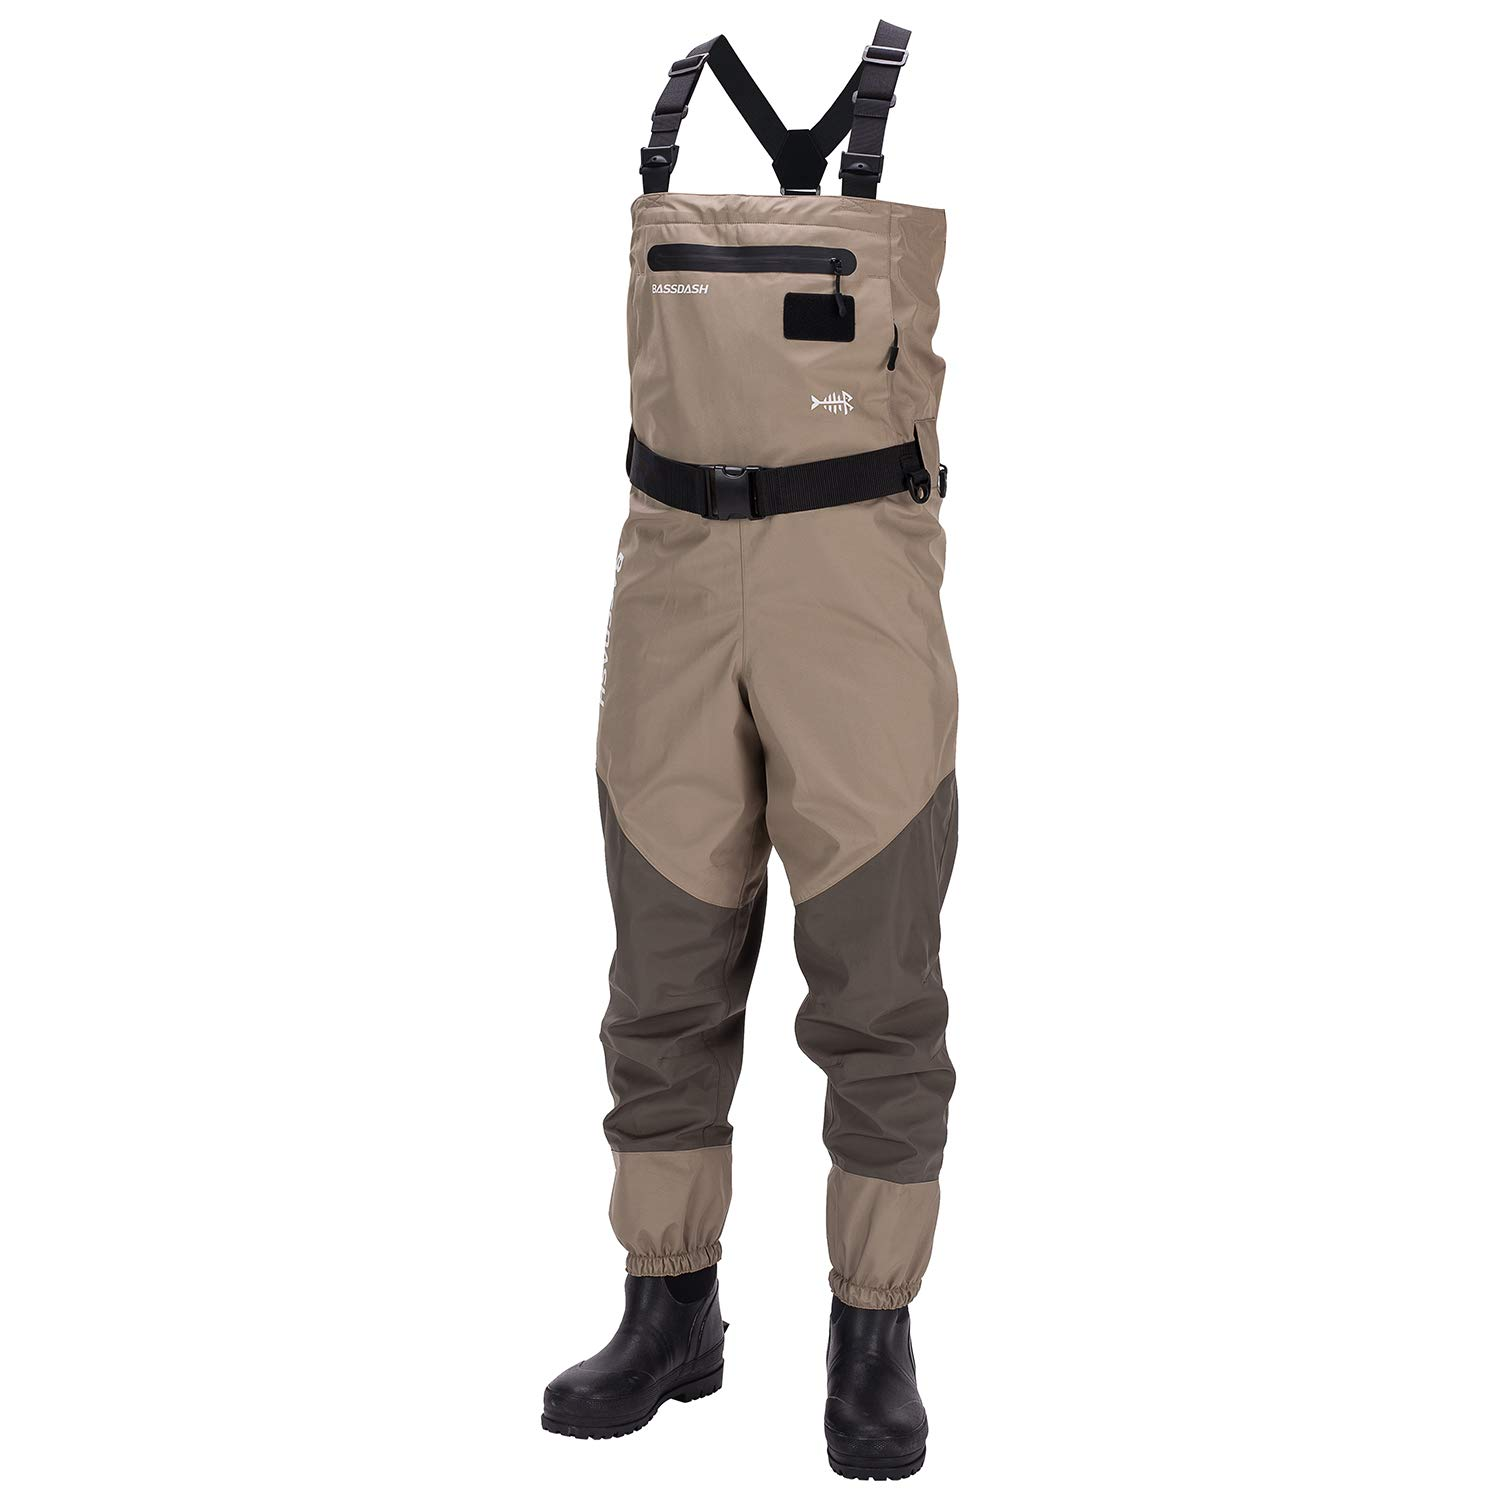 Bassdash Men s Breathable Lightweight Chest and Waist Convertible Waders for Fishing and Hunting, Stocking Foot and Boot Foot Waders Available in 7 Sizes